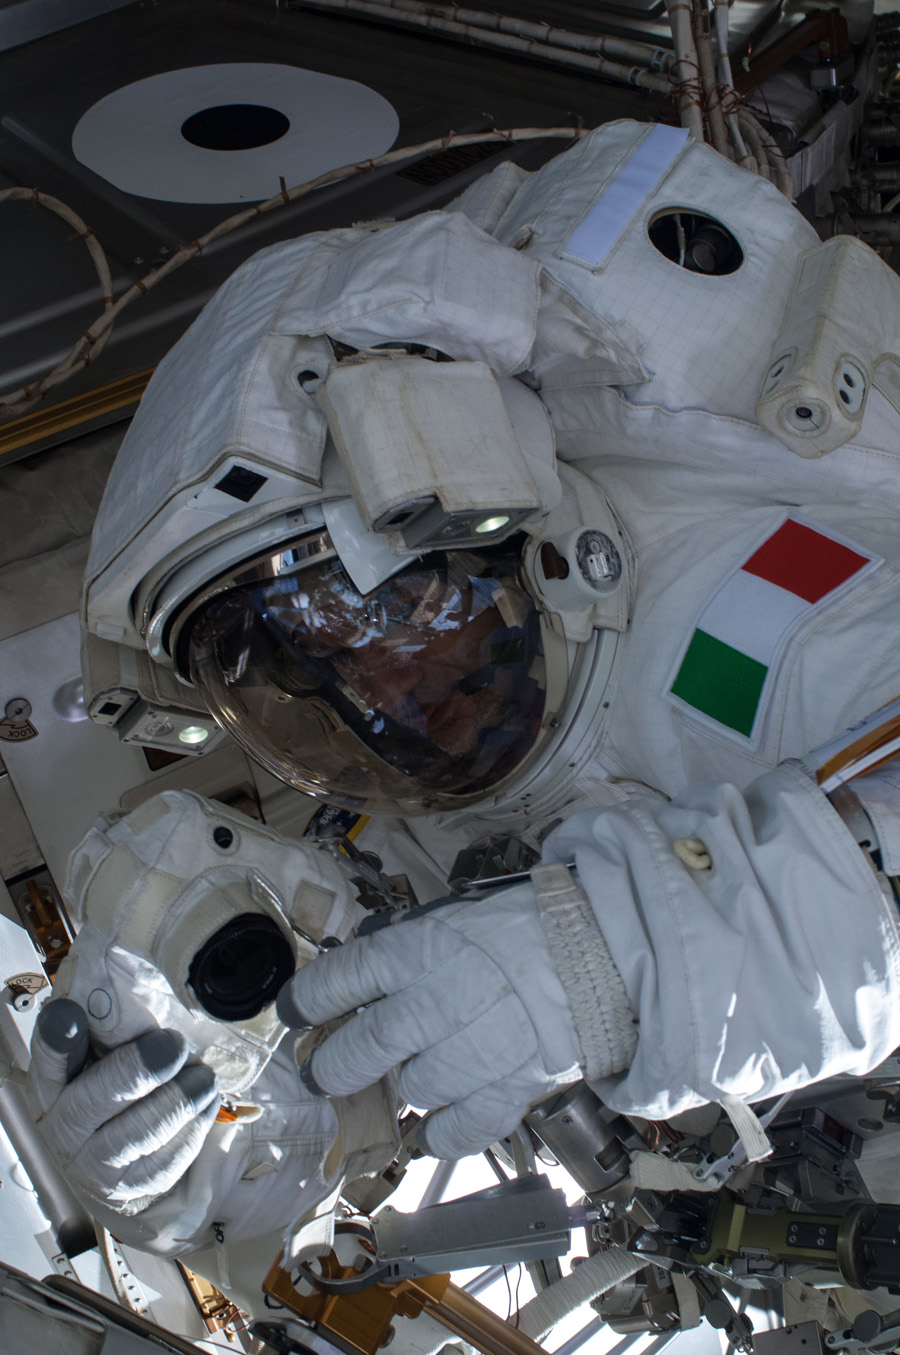 Spacesuit Water Leak Highlights Spacewalk Dangers